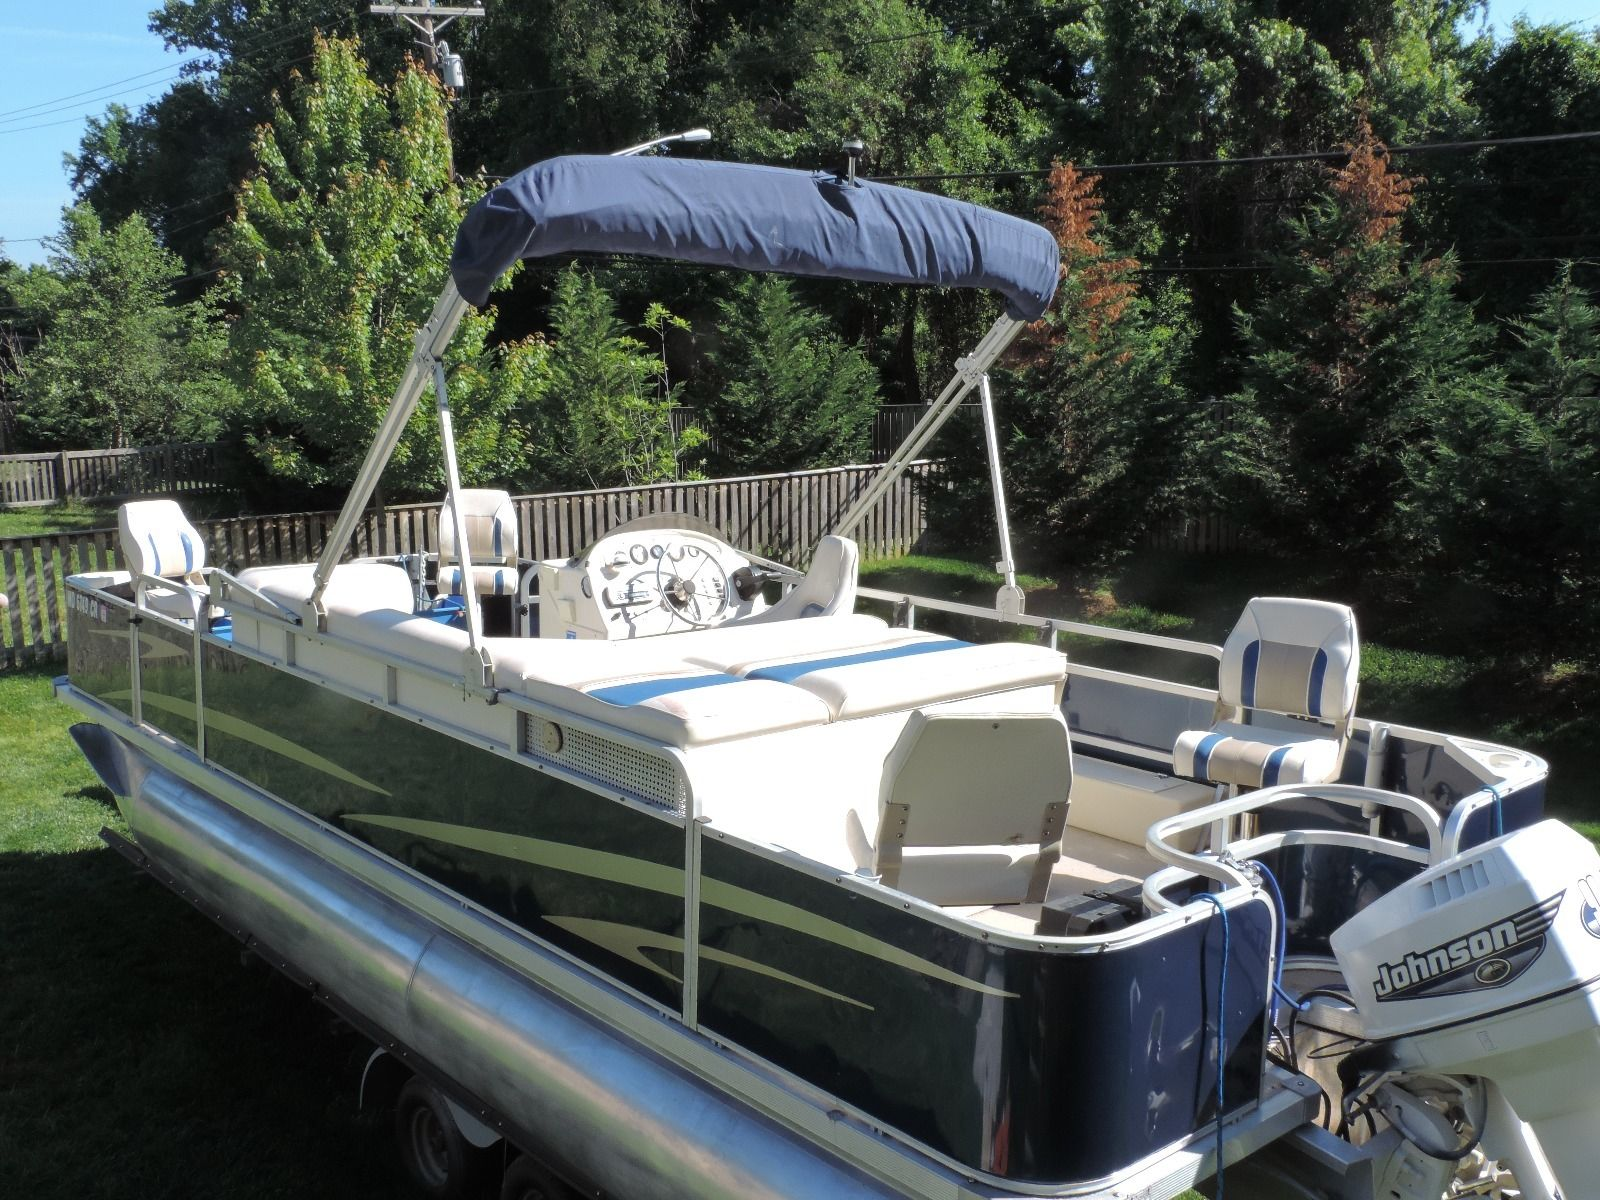 Sylvan 22 39 angler fish cruise 2000 for sale for 9 500 for Syvlan